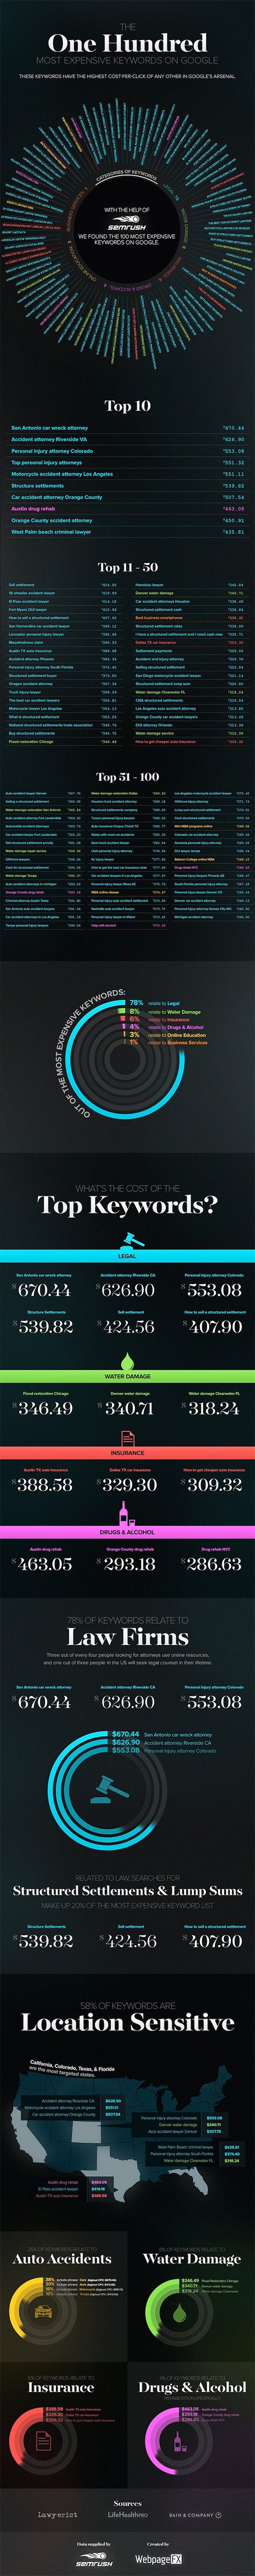 1638 blog most expensive keywords infographic